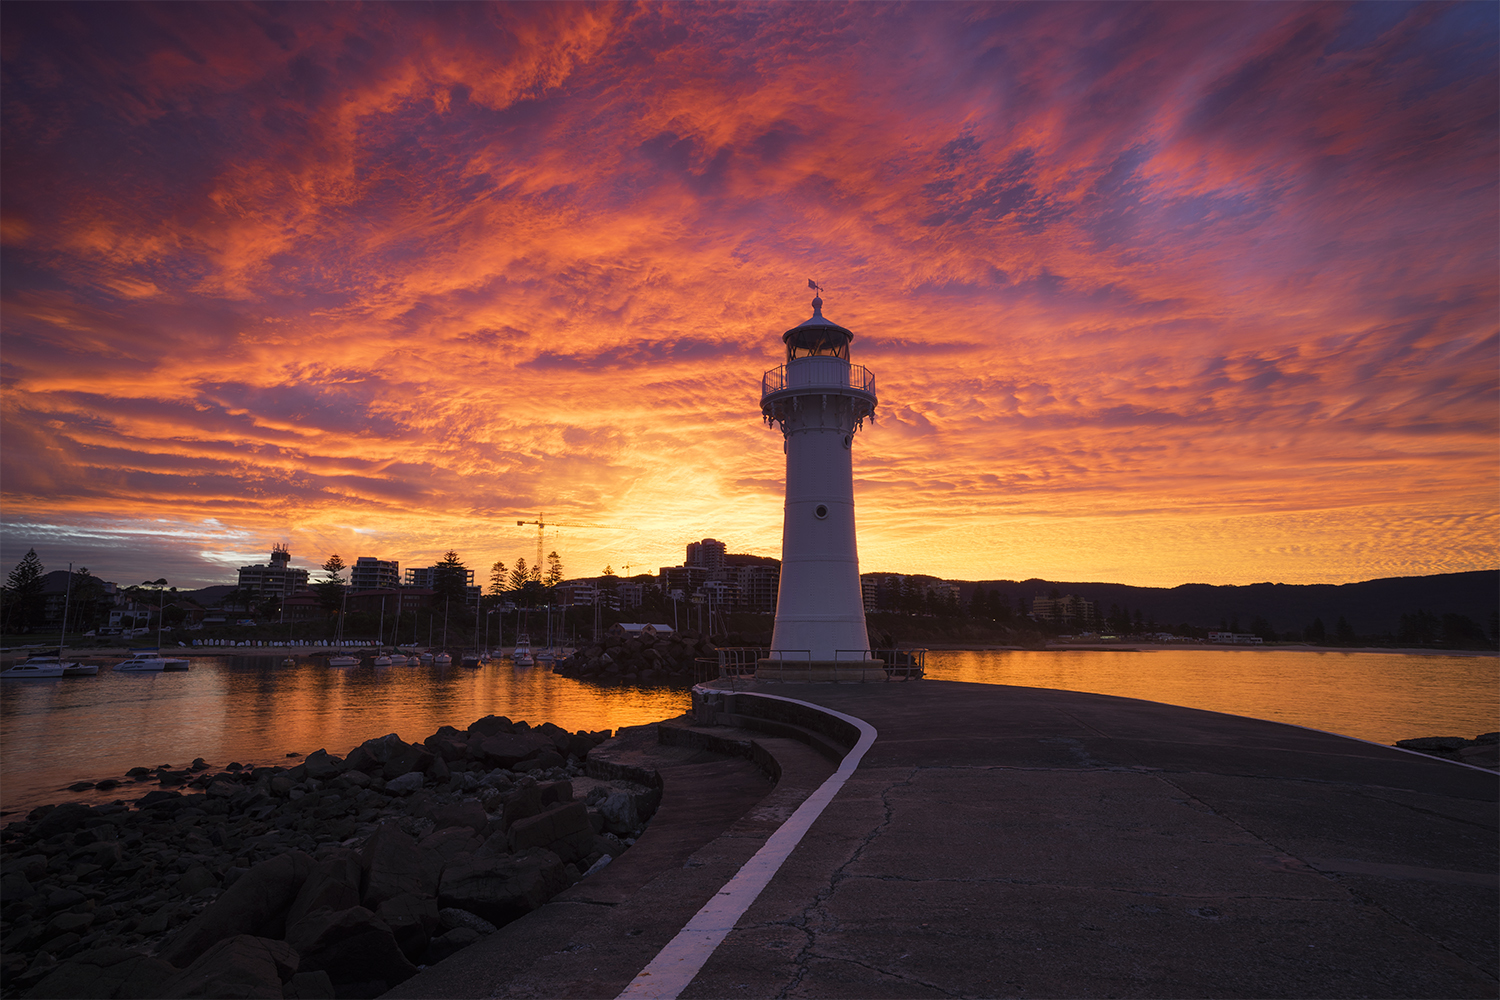 Sunset at Wollongong Harbour and Historic Lighthouse